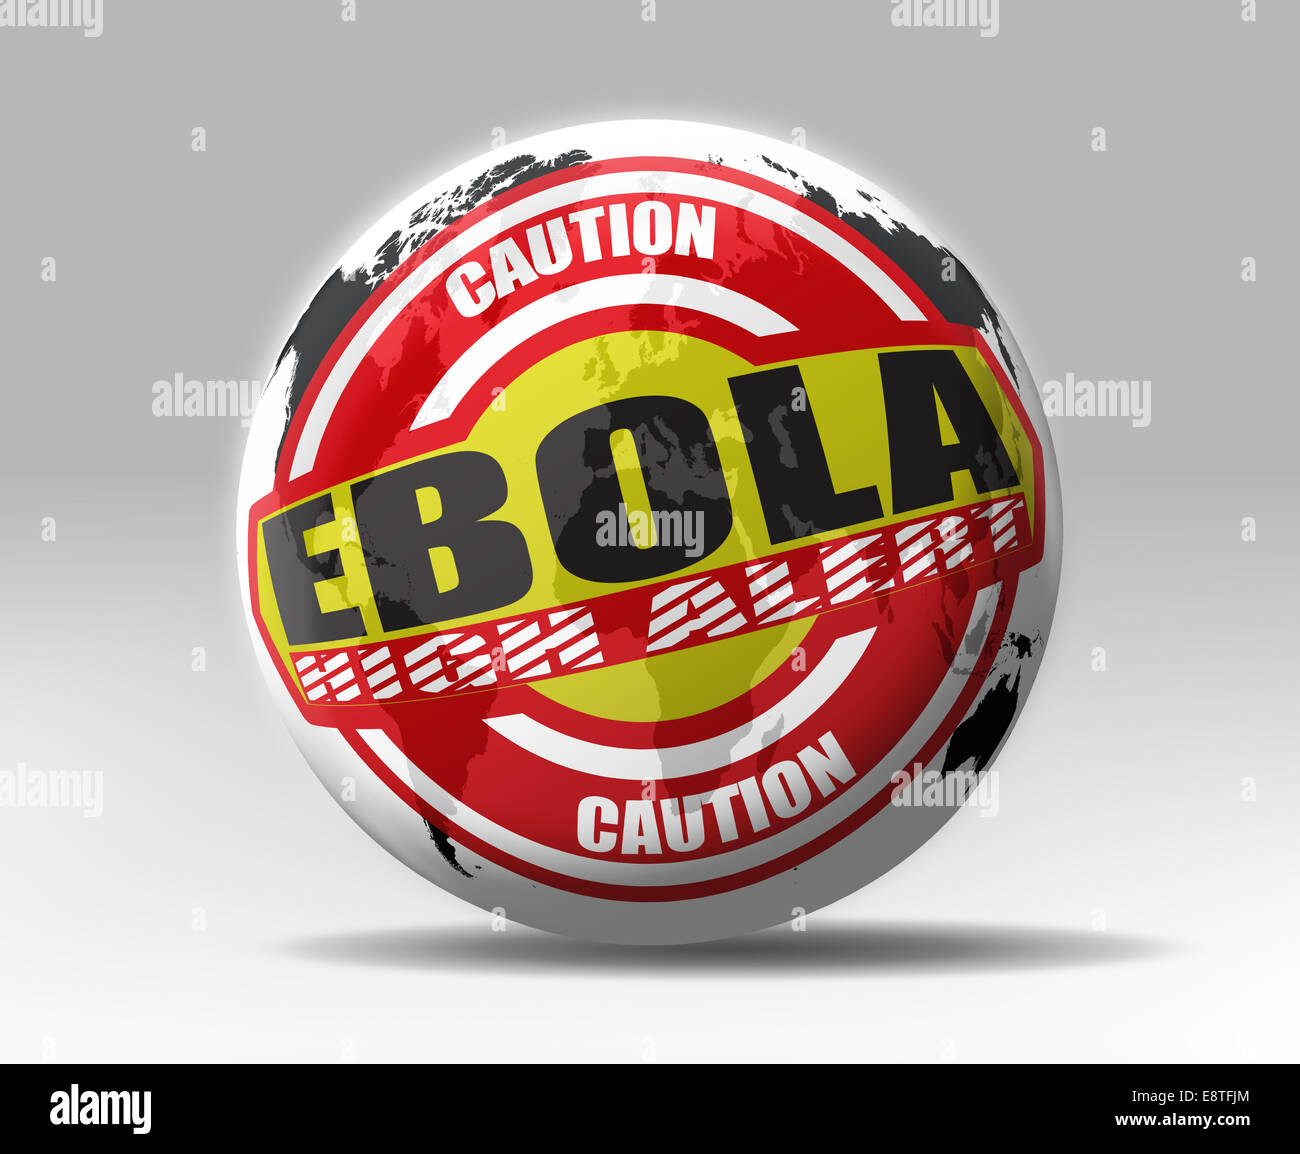 Ebola high alert world wide - Stock Image